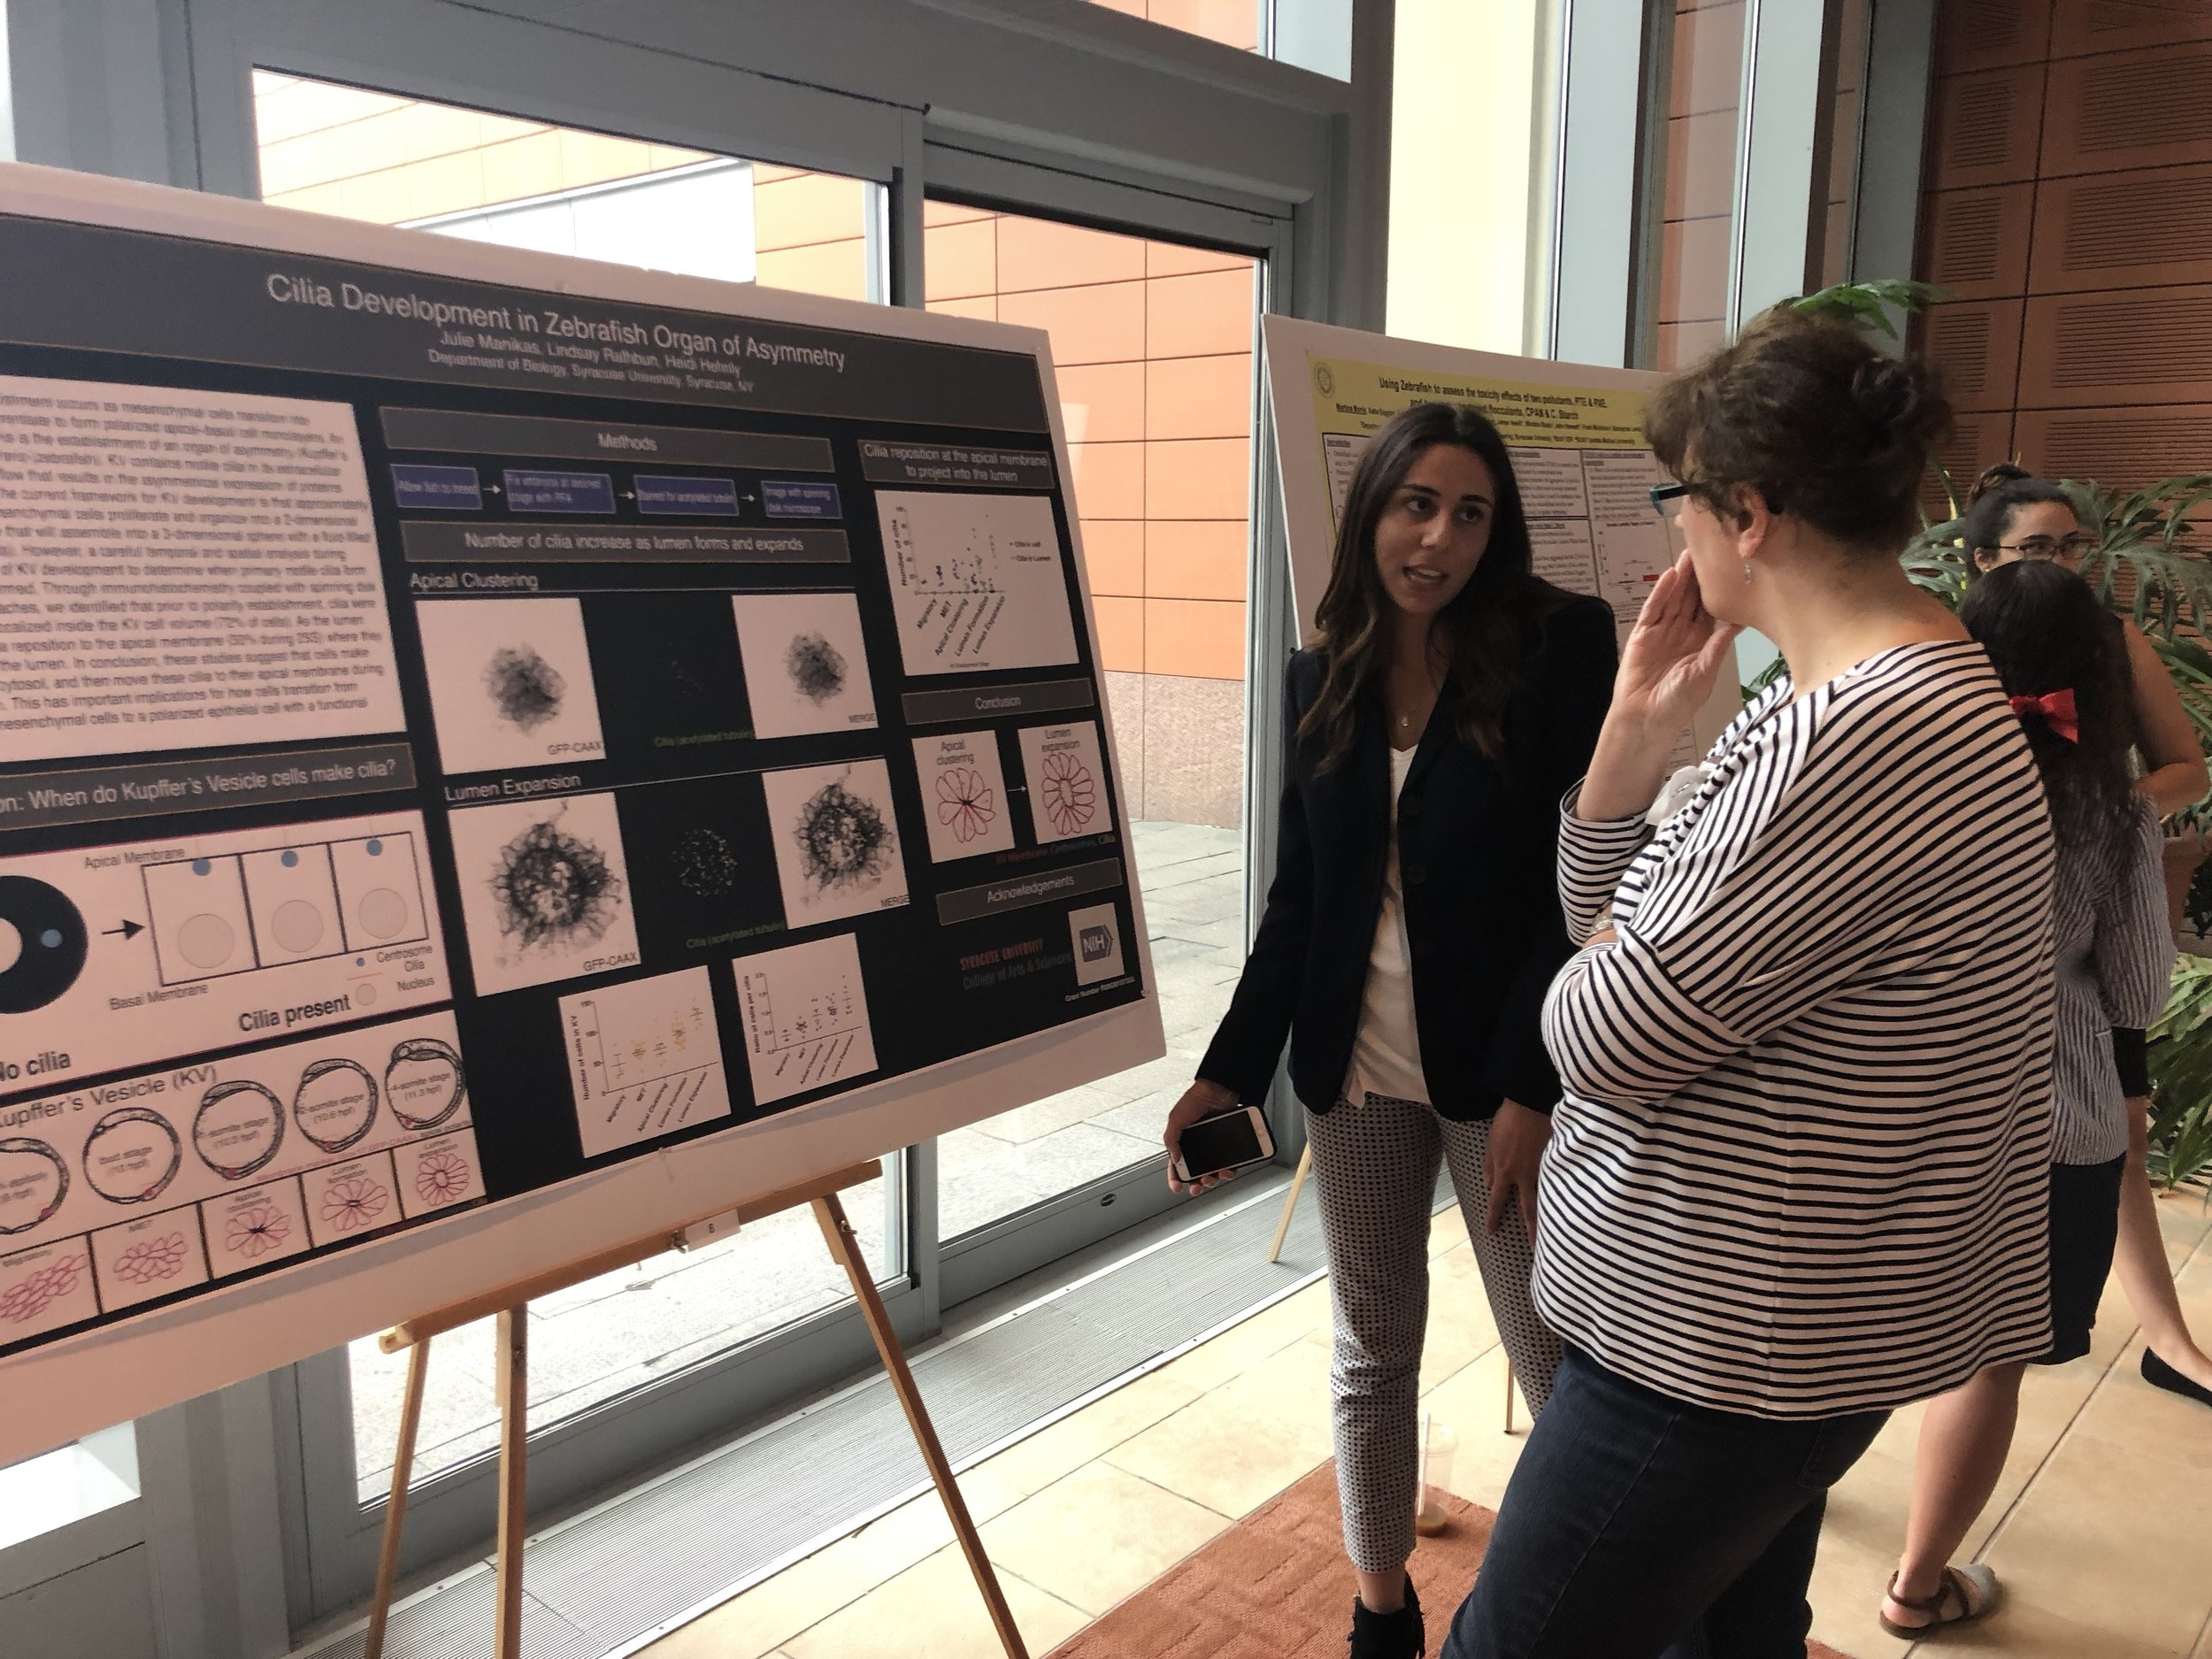 Julie presenting her work on cilia formation in the zebrafish organ of asymmetry. This work was done in collaboration with Lindsay Rathbun (Hehnly Lab).